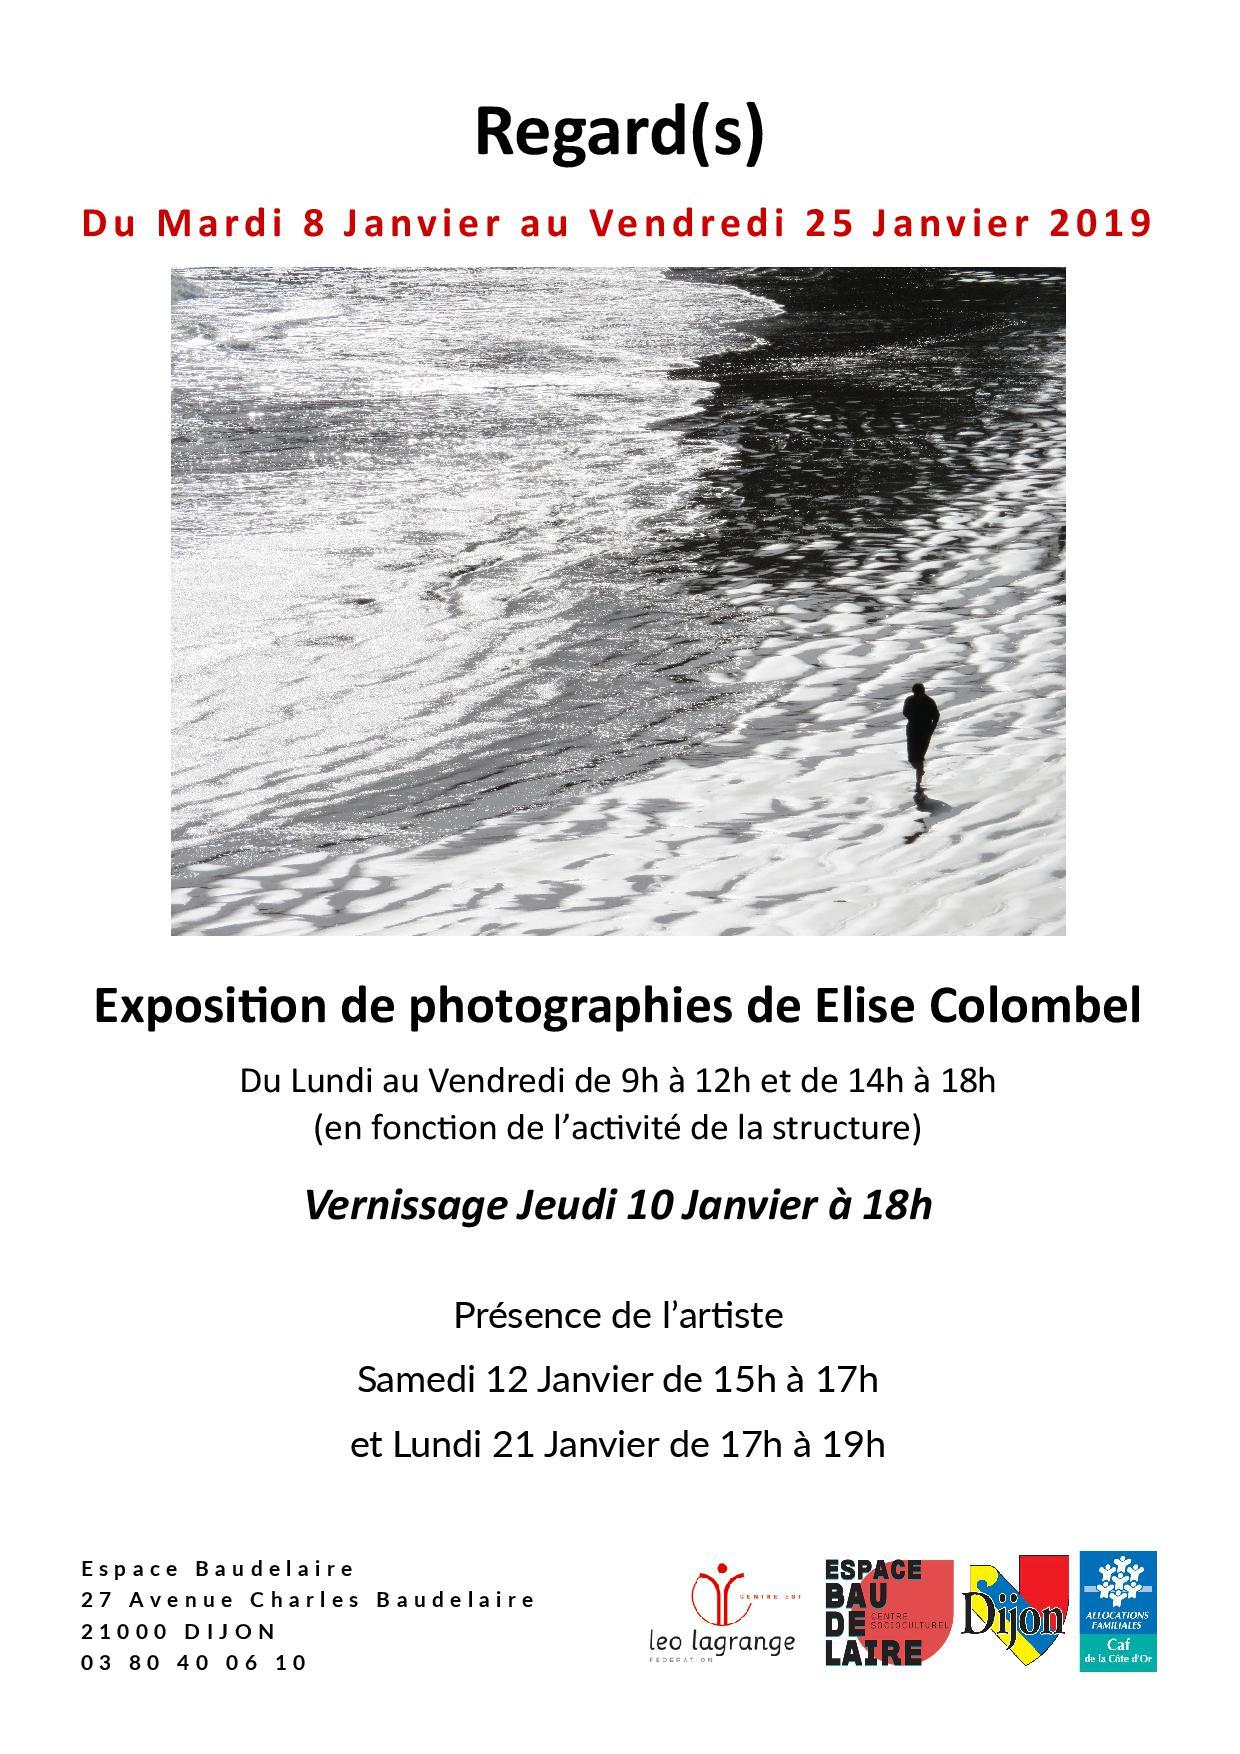 Exposition de photographies de Élise Colombel